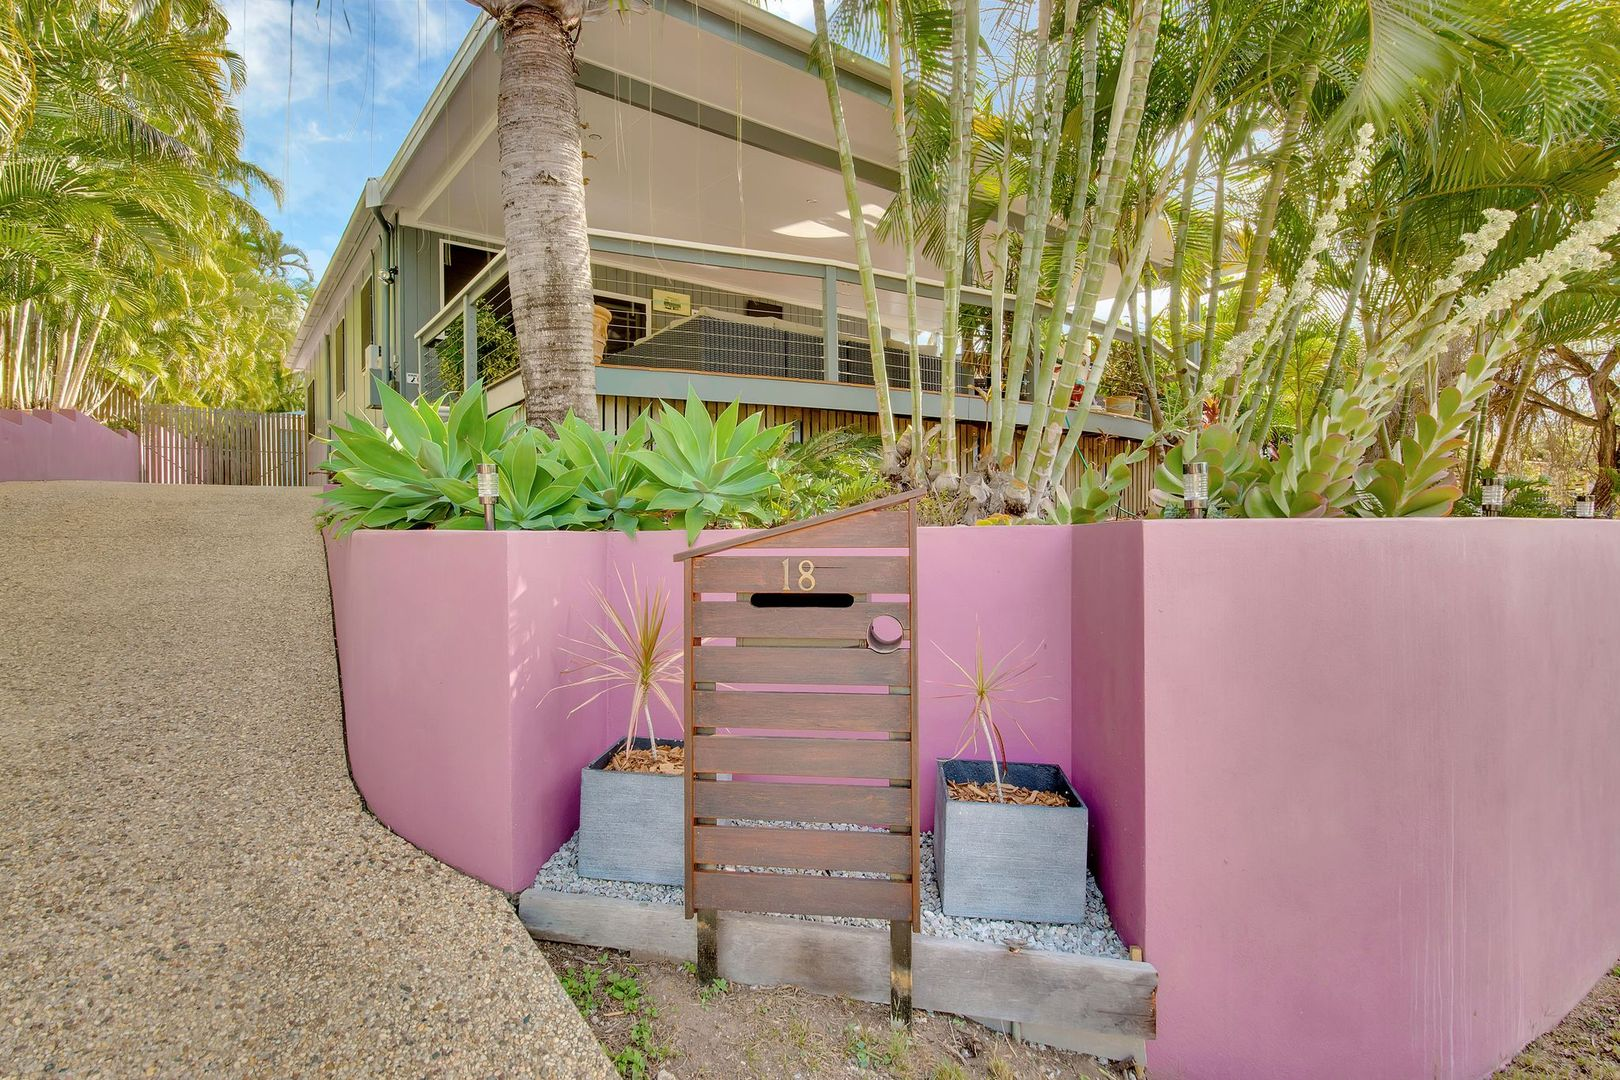 18 TREVALLY STREET, Tannum Sands QLD 4680, Image 0